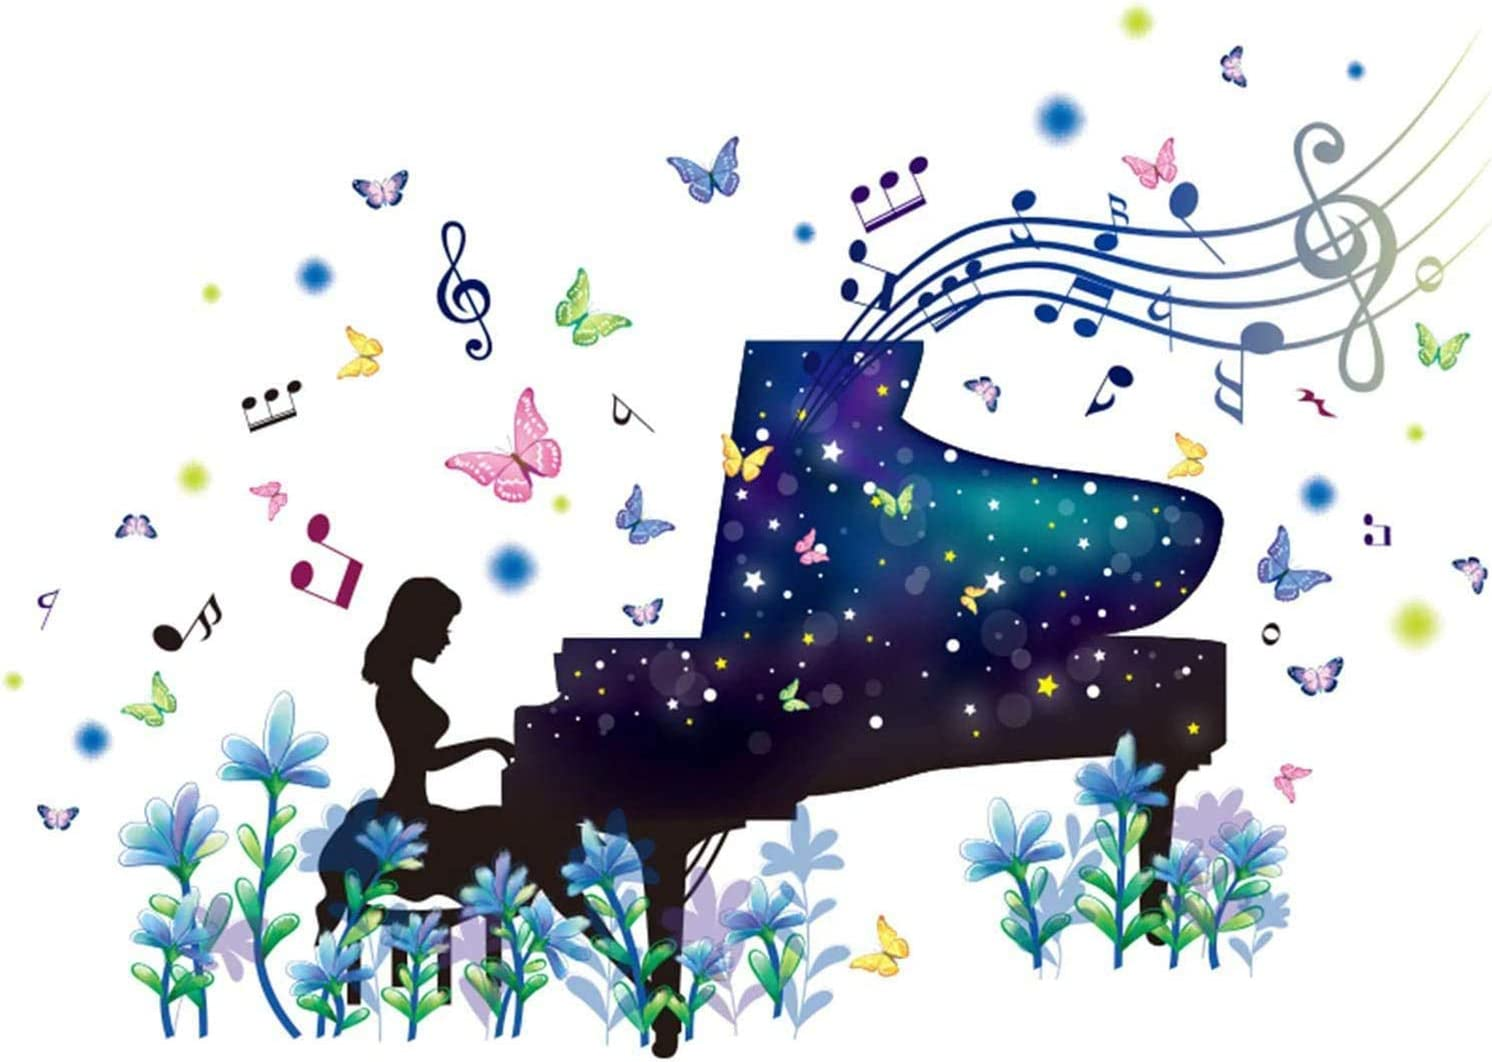 SENGTER Piano Girl Wall Decals Removable Wall Murals Peel and Stick Wallpaper Self-Adhesive Wall Stickers Wall Art Wall Posters Wall Decor for Bedroom Teen Girl Living Room Dance Room Home